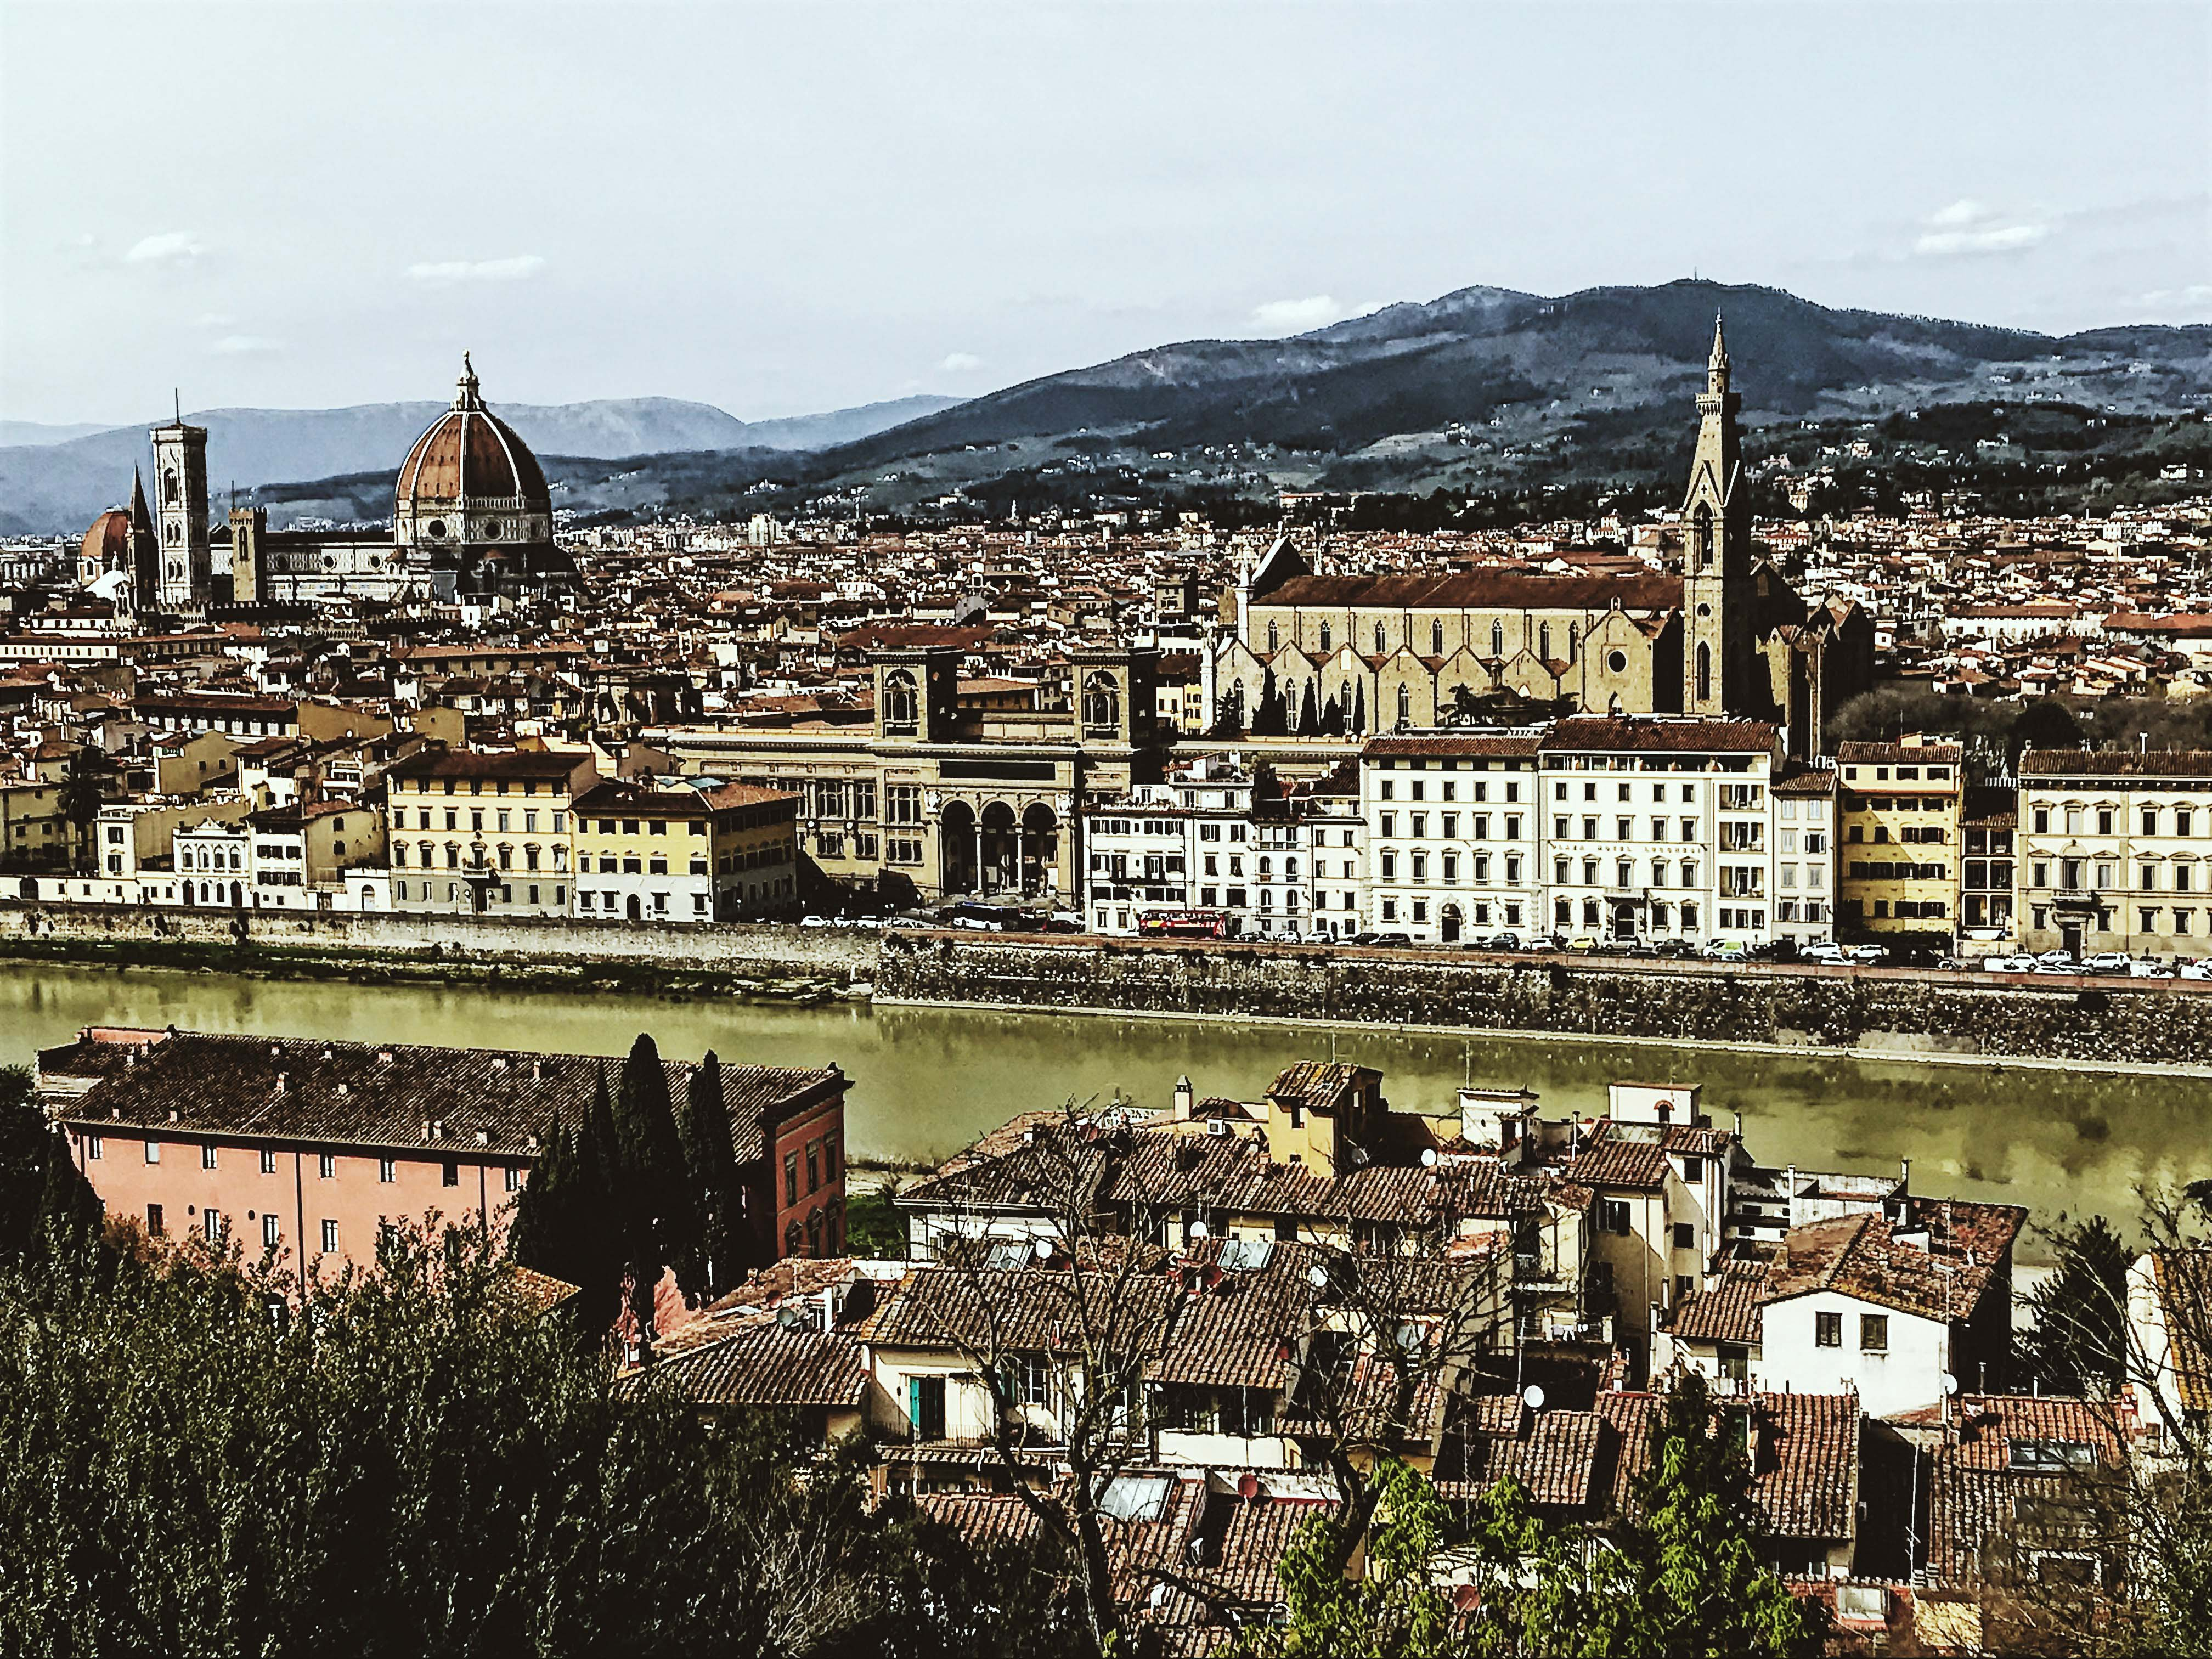 The view of Florence from Piazzale Michelangelo